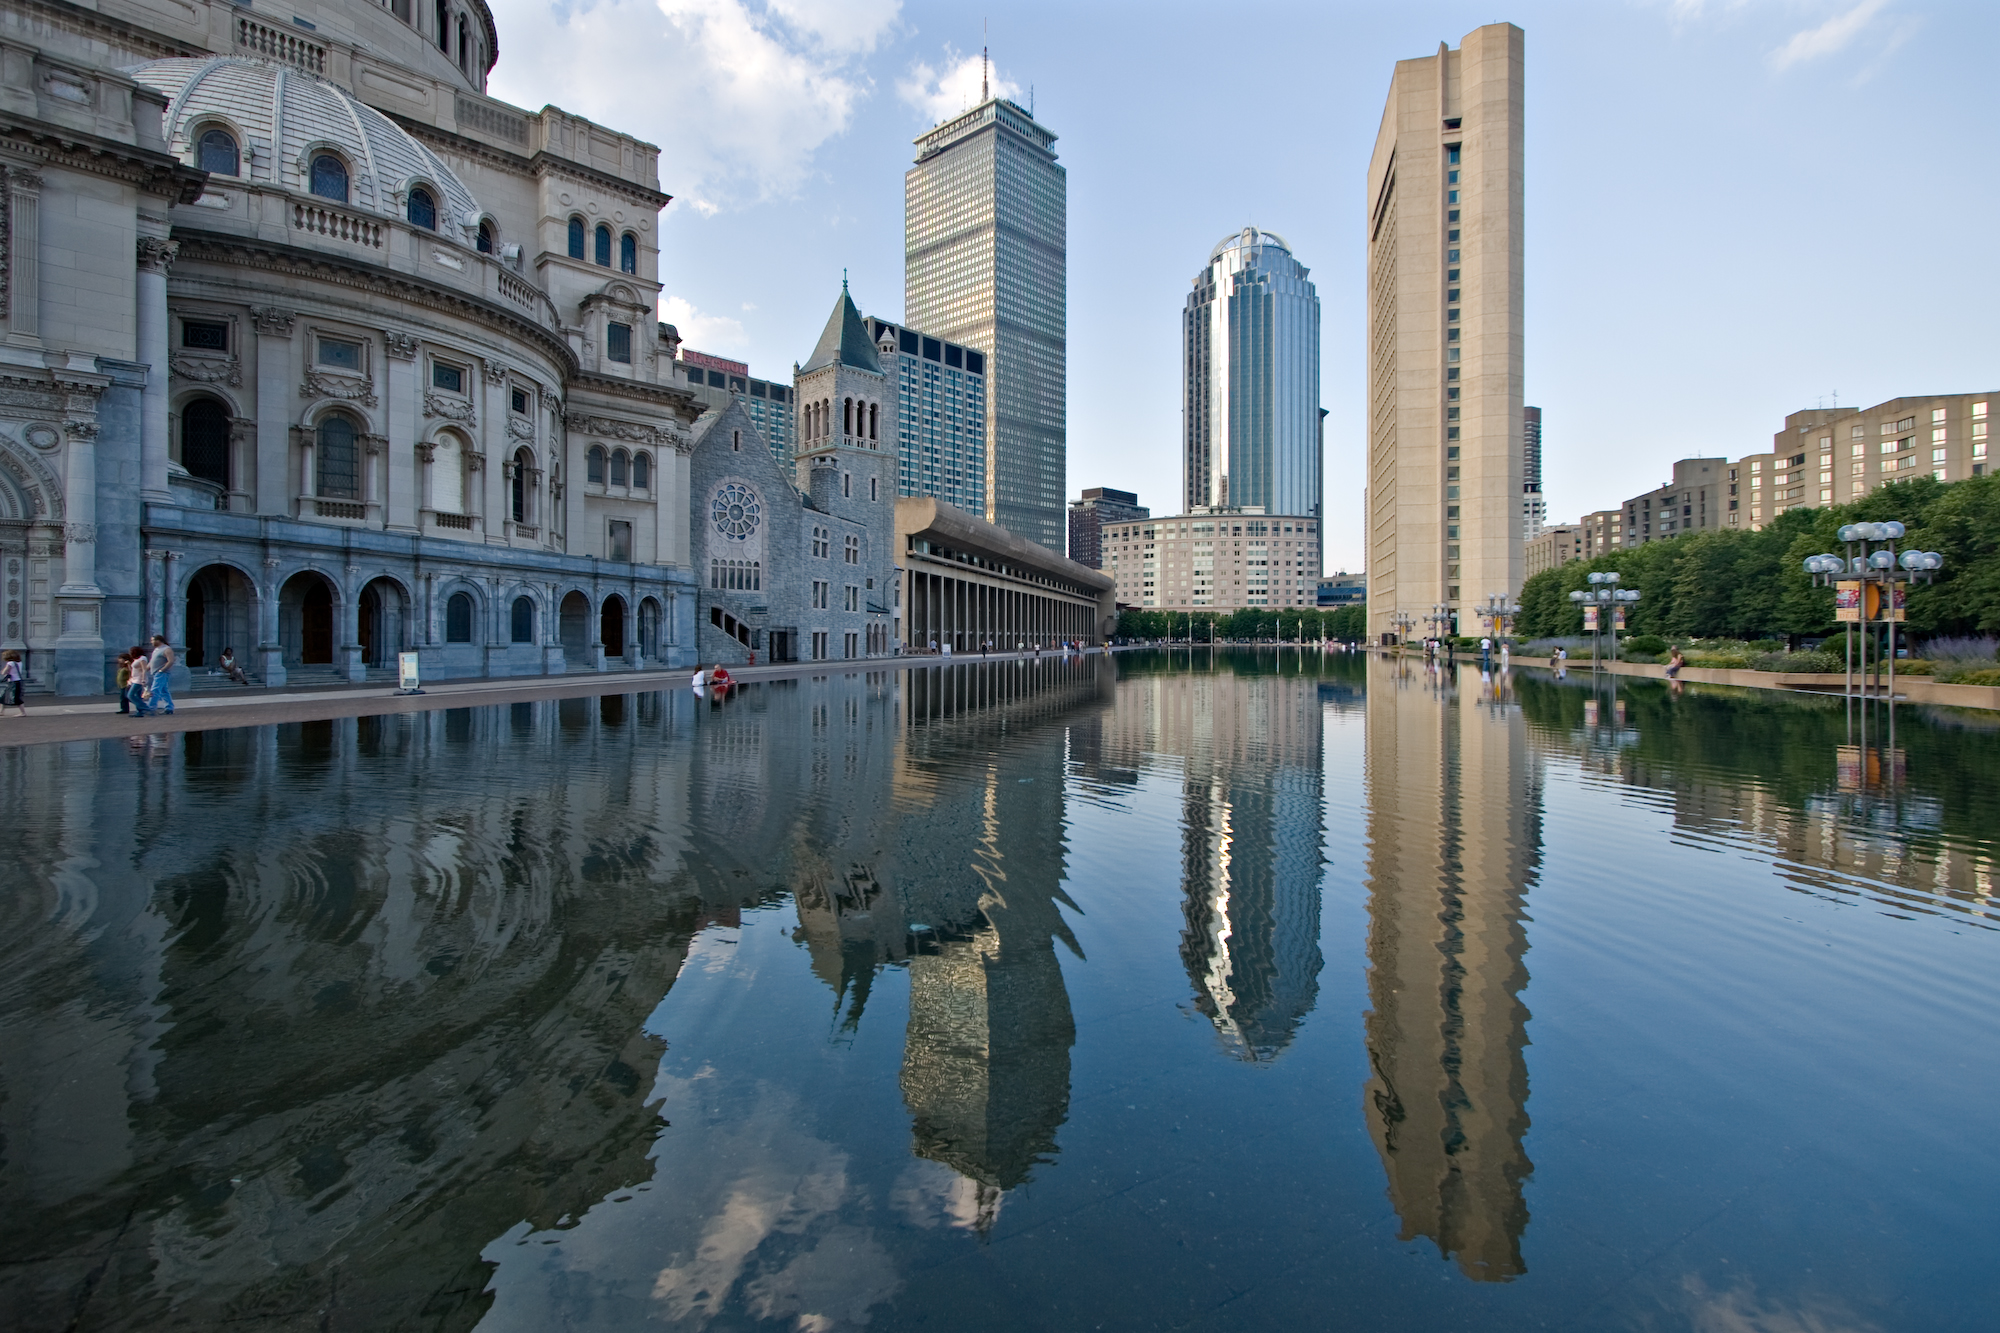 Design Reflecting Pool reflecting pool wikipedia at the christian science church in boston massachusetts